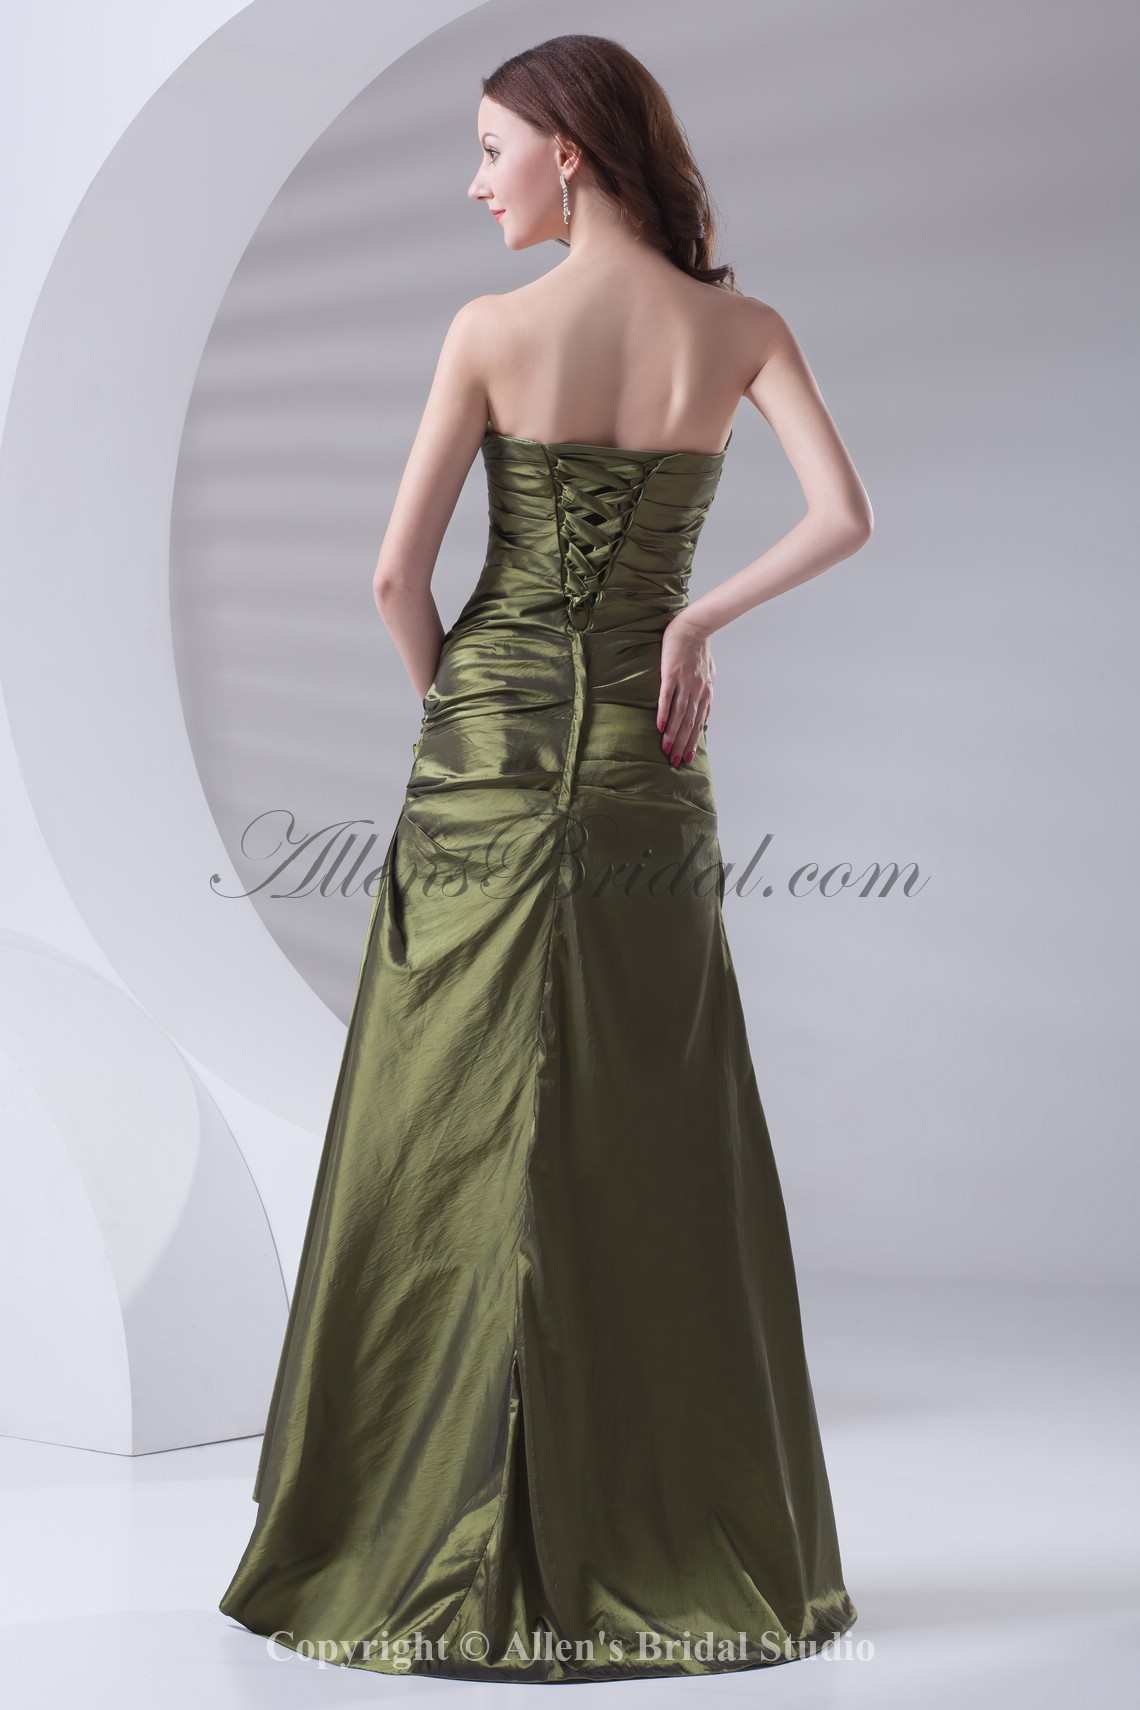 /406-3251/taffeta-strapless-neckline-a-line-floor-length-directionally-ruched-prom-dress.jpg